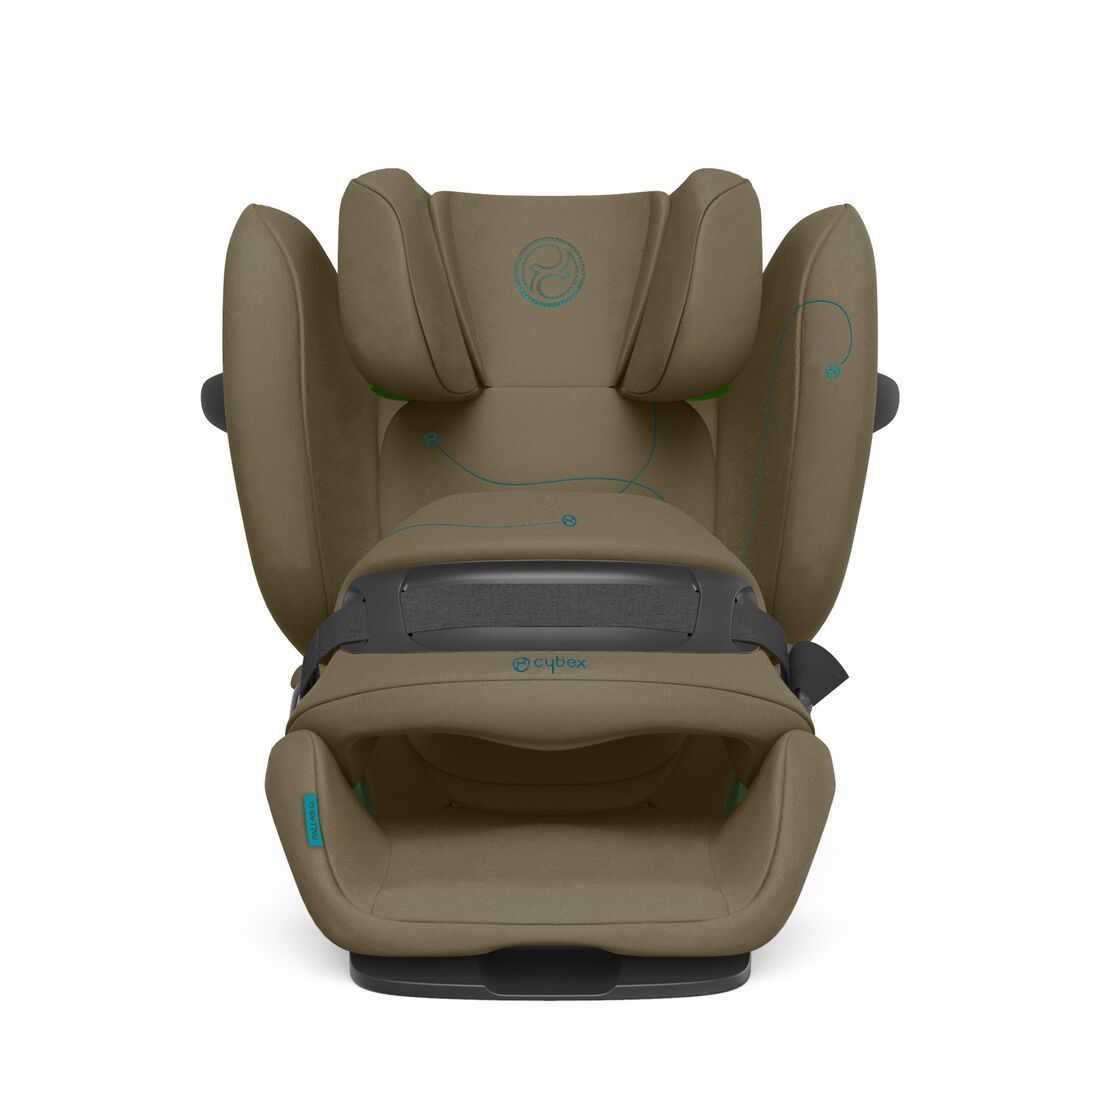 CYBEX Pallas G i-Size - Classic Beige in Classic Beige large image number 2